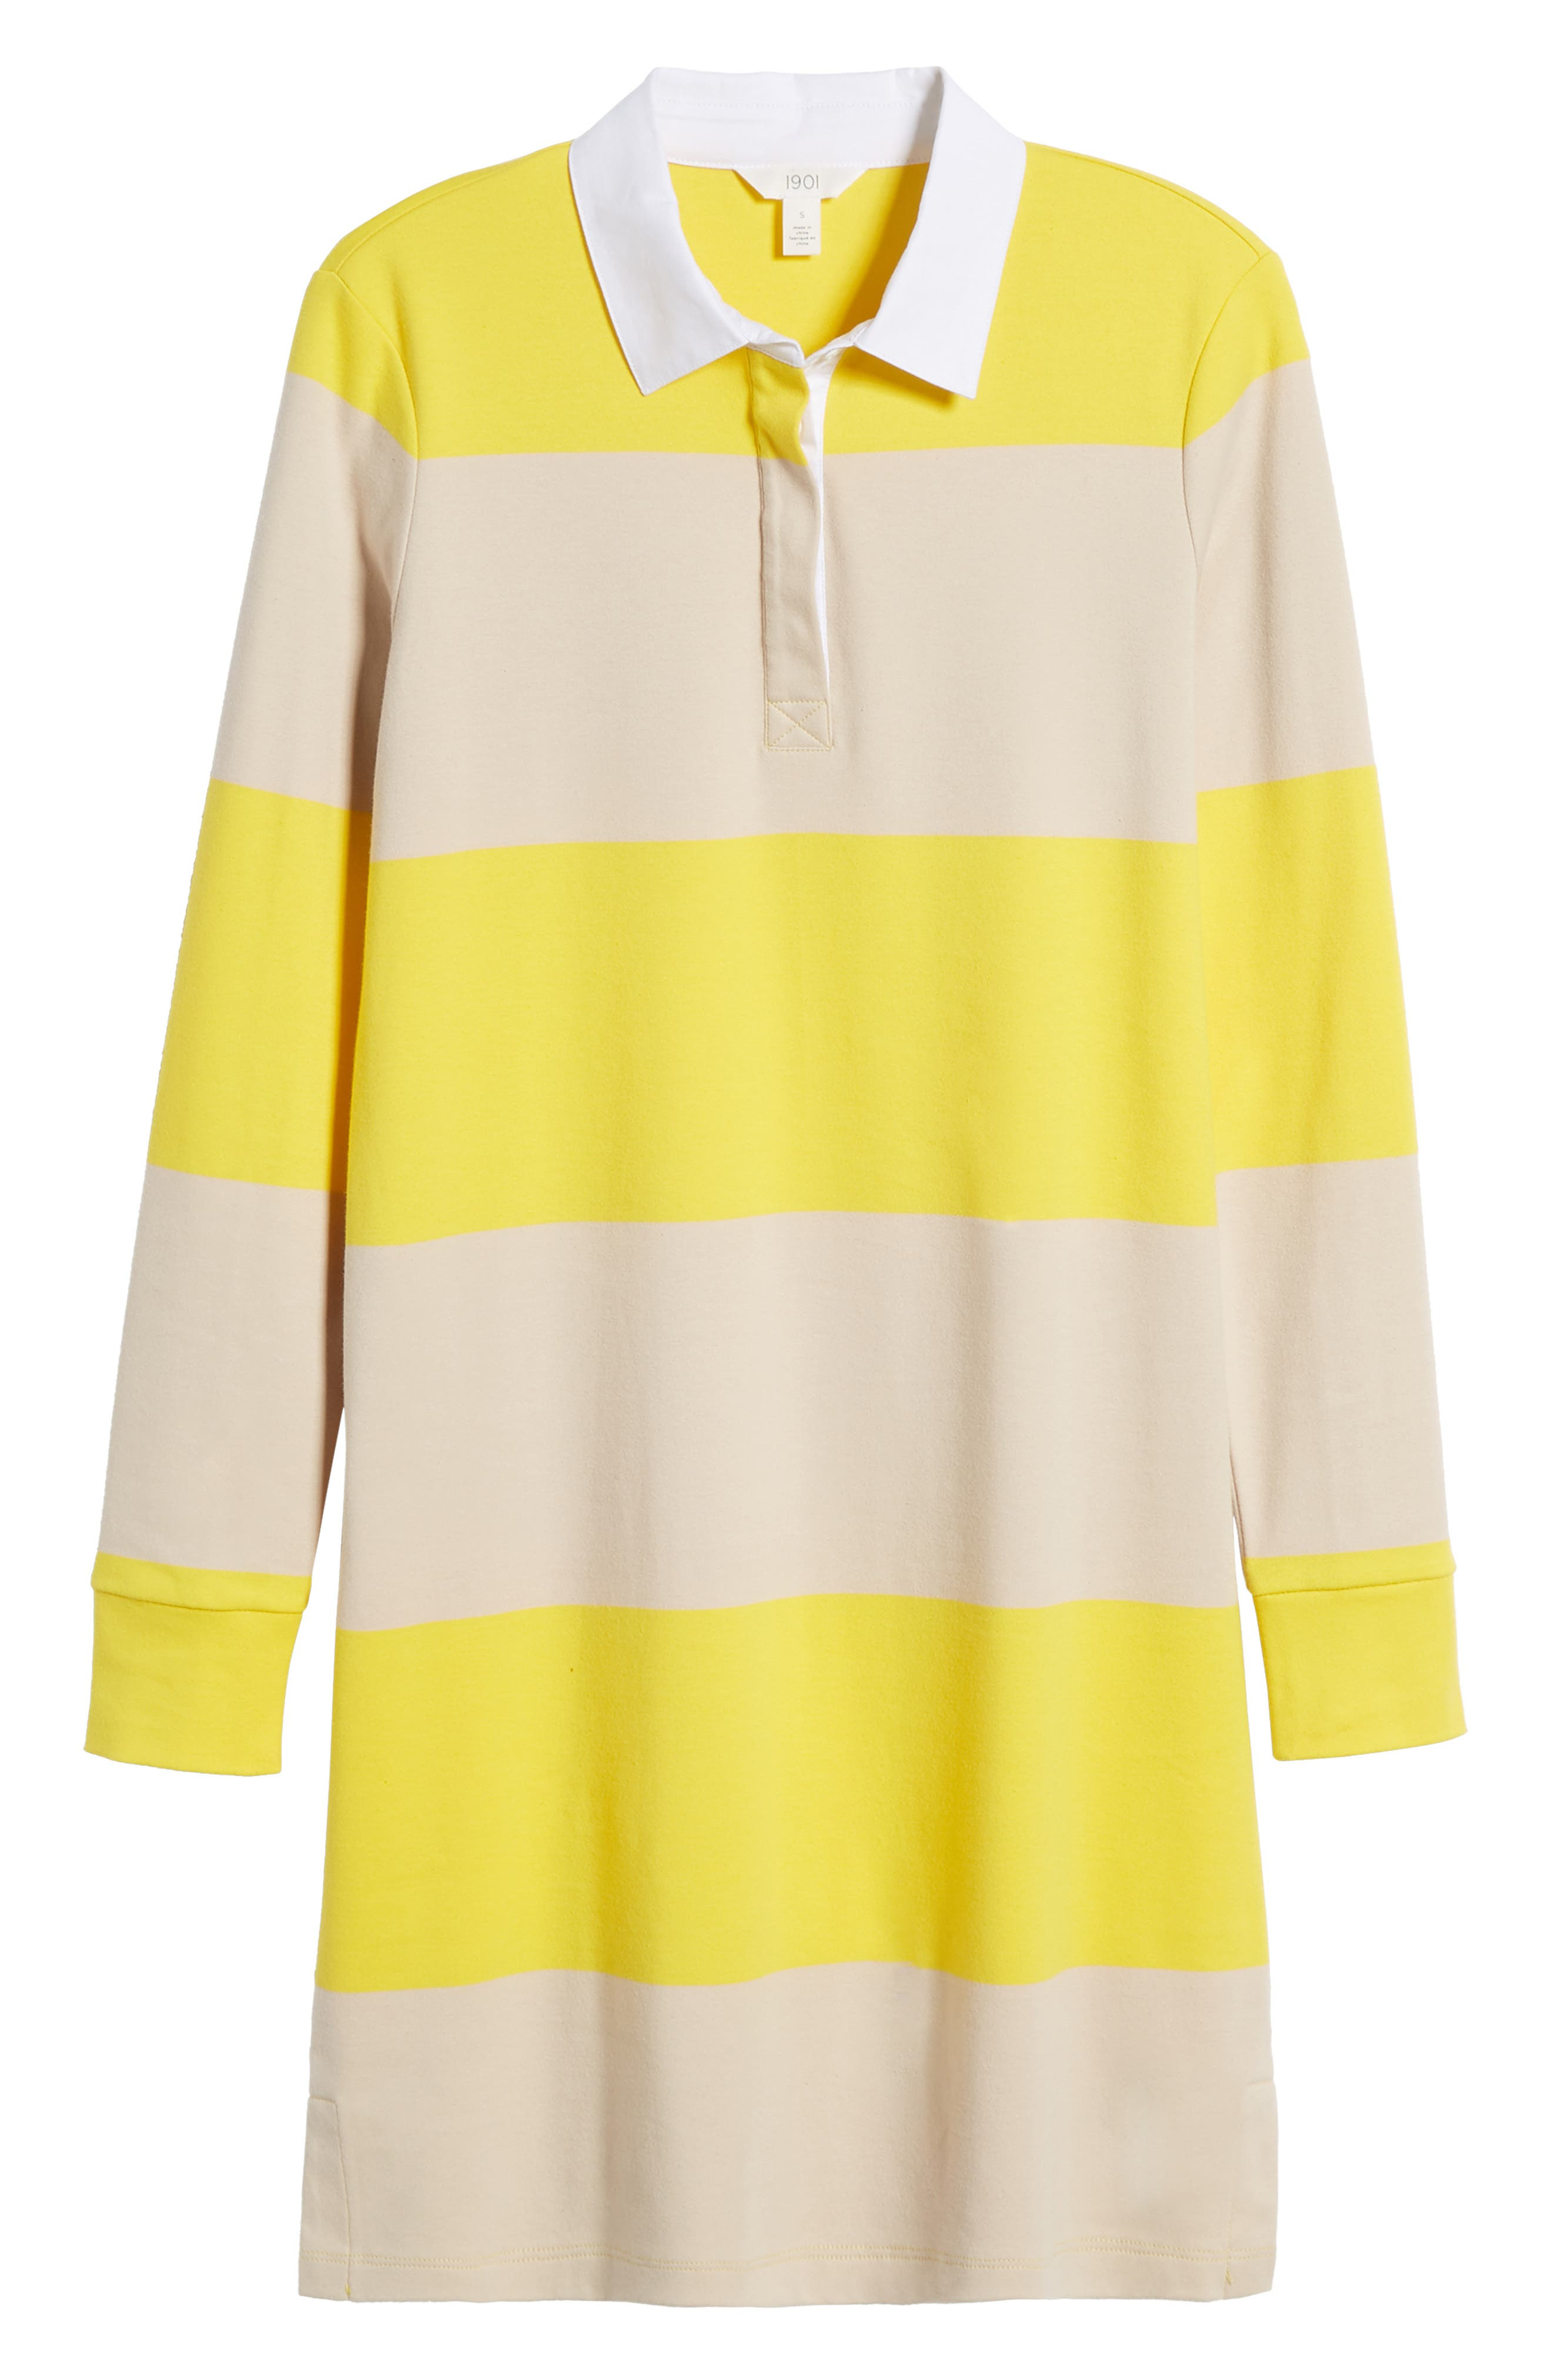 Cotton Rugby Dress,                             Alternate thumbnail 6, color,                             Yellow- Beige Stripe